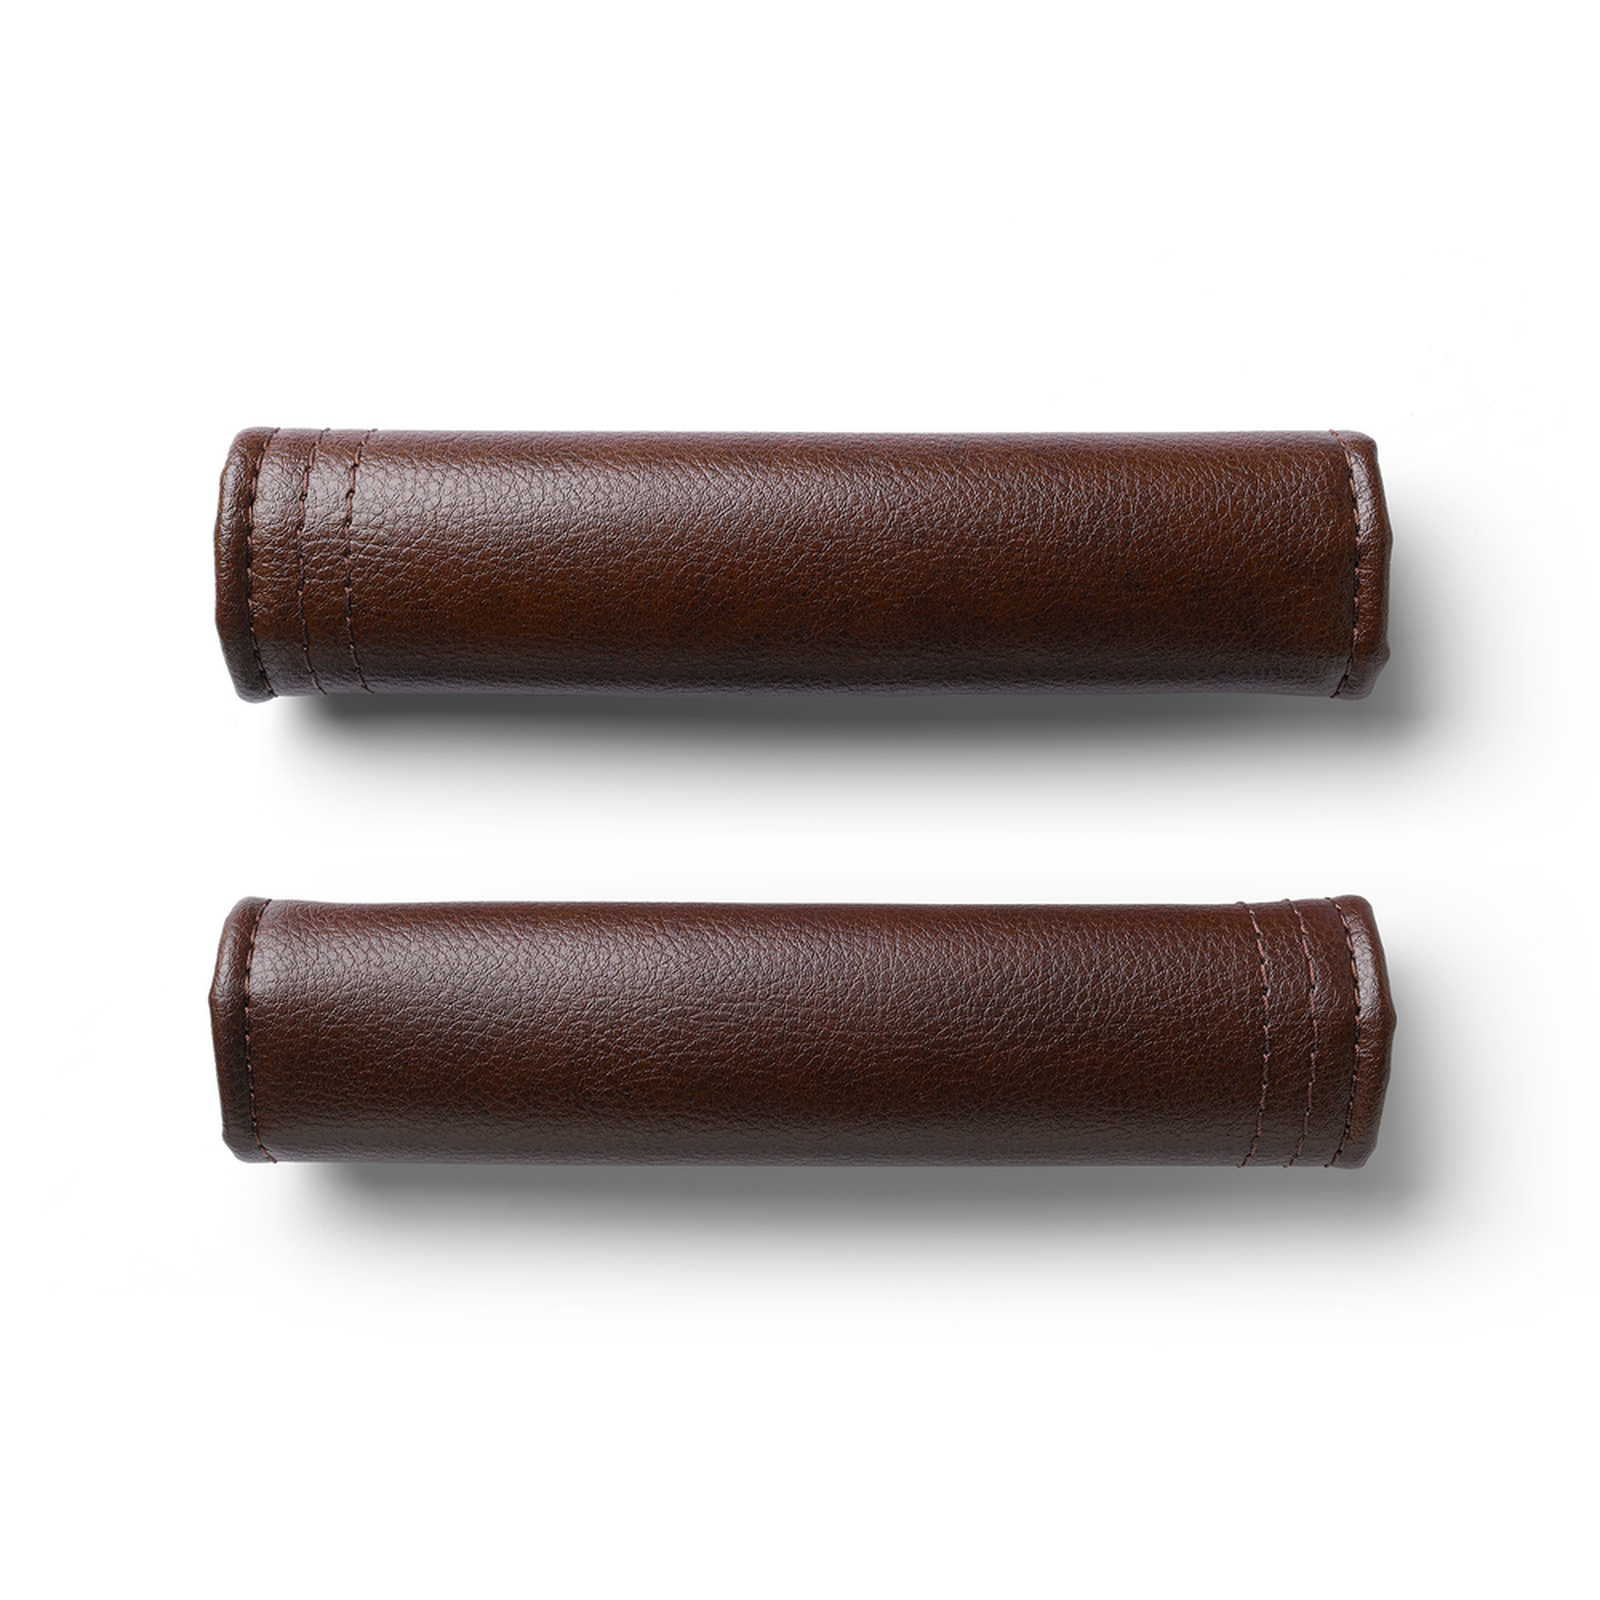 Bugaboo Bee 5 faux leather grips